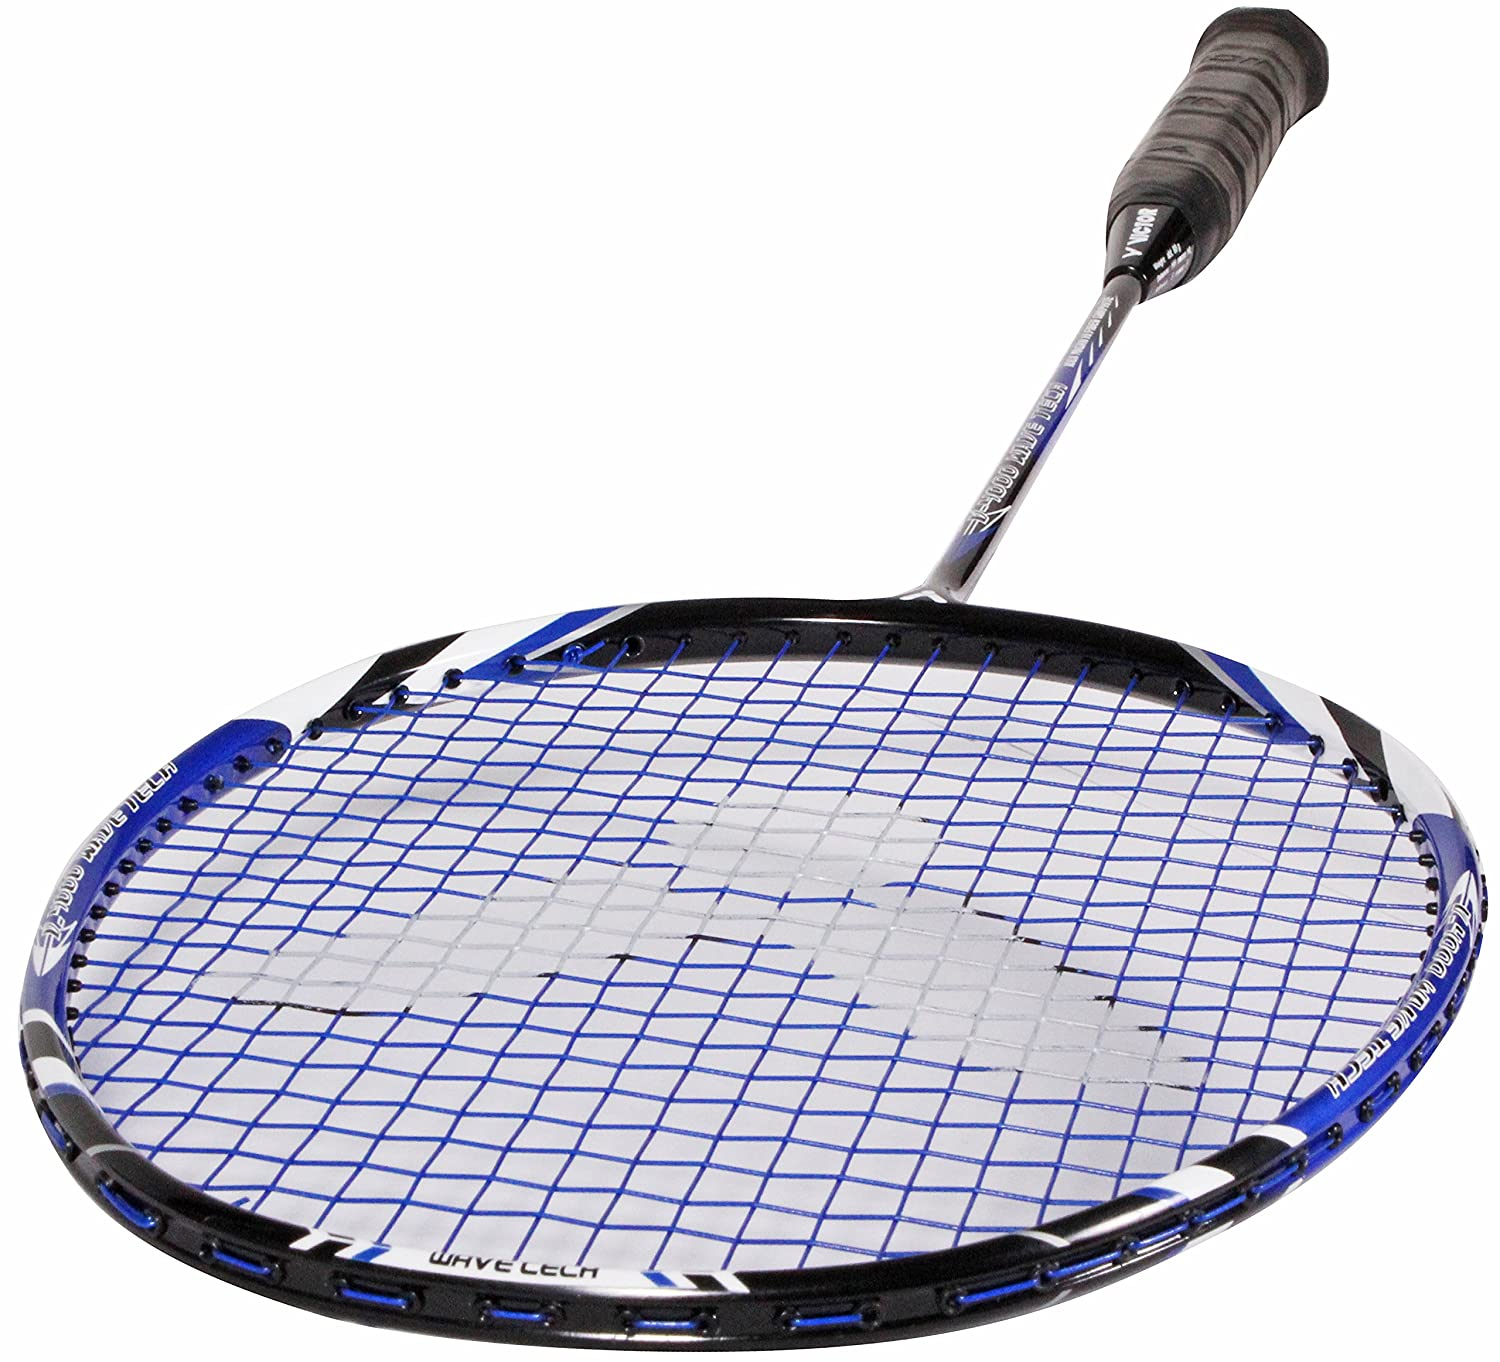 Victor V-4000 Wave Tech badminton racquet single or as set of 2 with balls